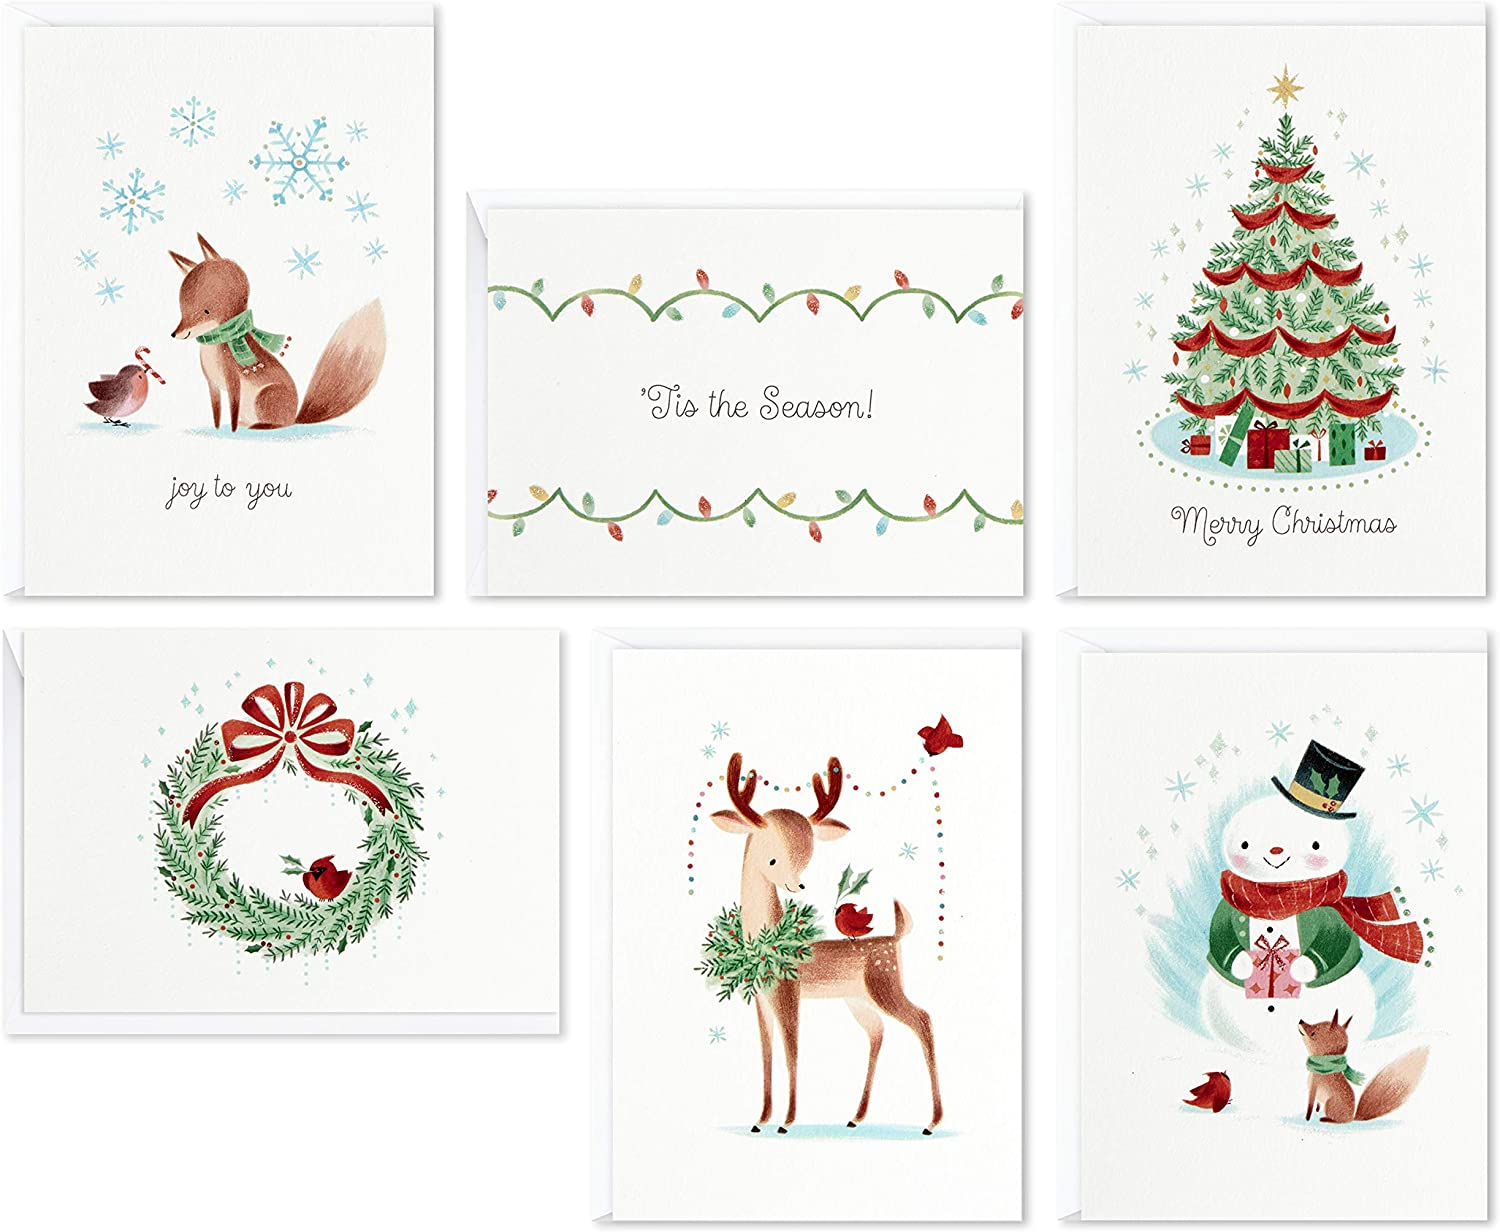 Amazon Com Hallmark Assorted Boxed Christmas Cards Vintage Holidays 48 Cards With Envelopes Everything Else